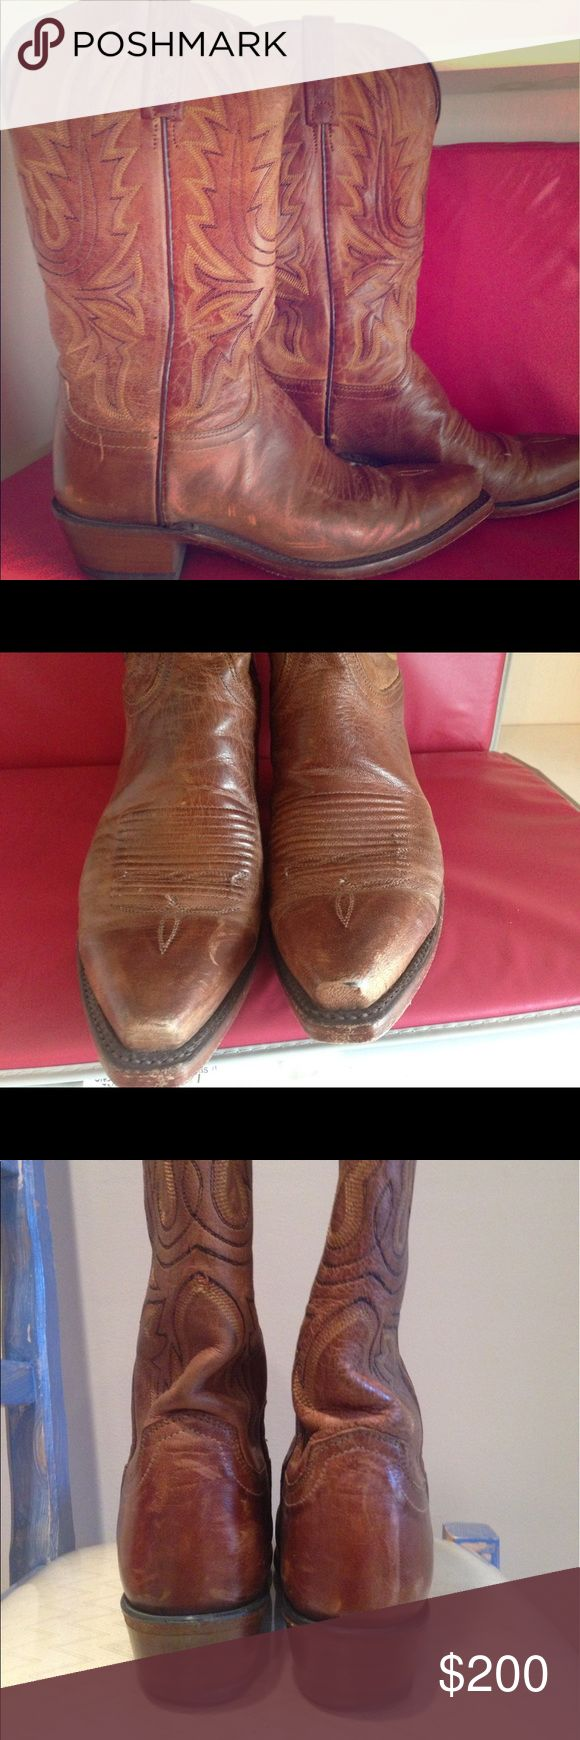 Lucchesse cowboy boot - one hour flash sale!!! Authentic Lucchese cowboy boots. Tan goat leather.  Pre-loved but in impecable brand new conditions. Worn just a couple of times. In their original box. Definitely a statement and elegant boot. Lucchese Shoes Heeled Boots